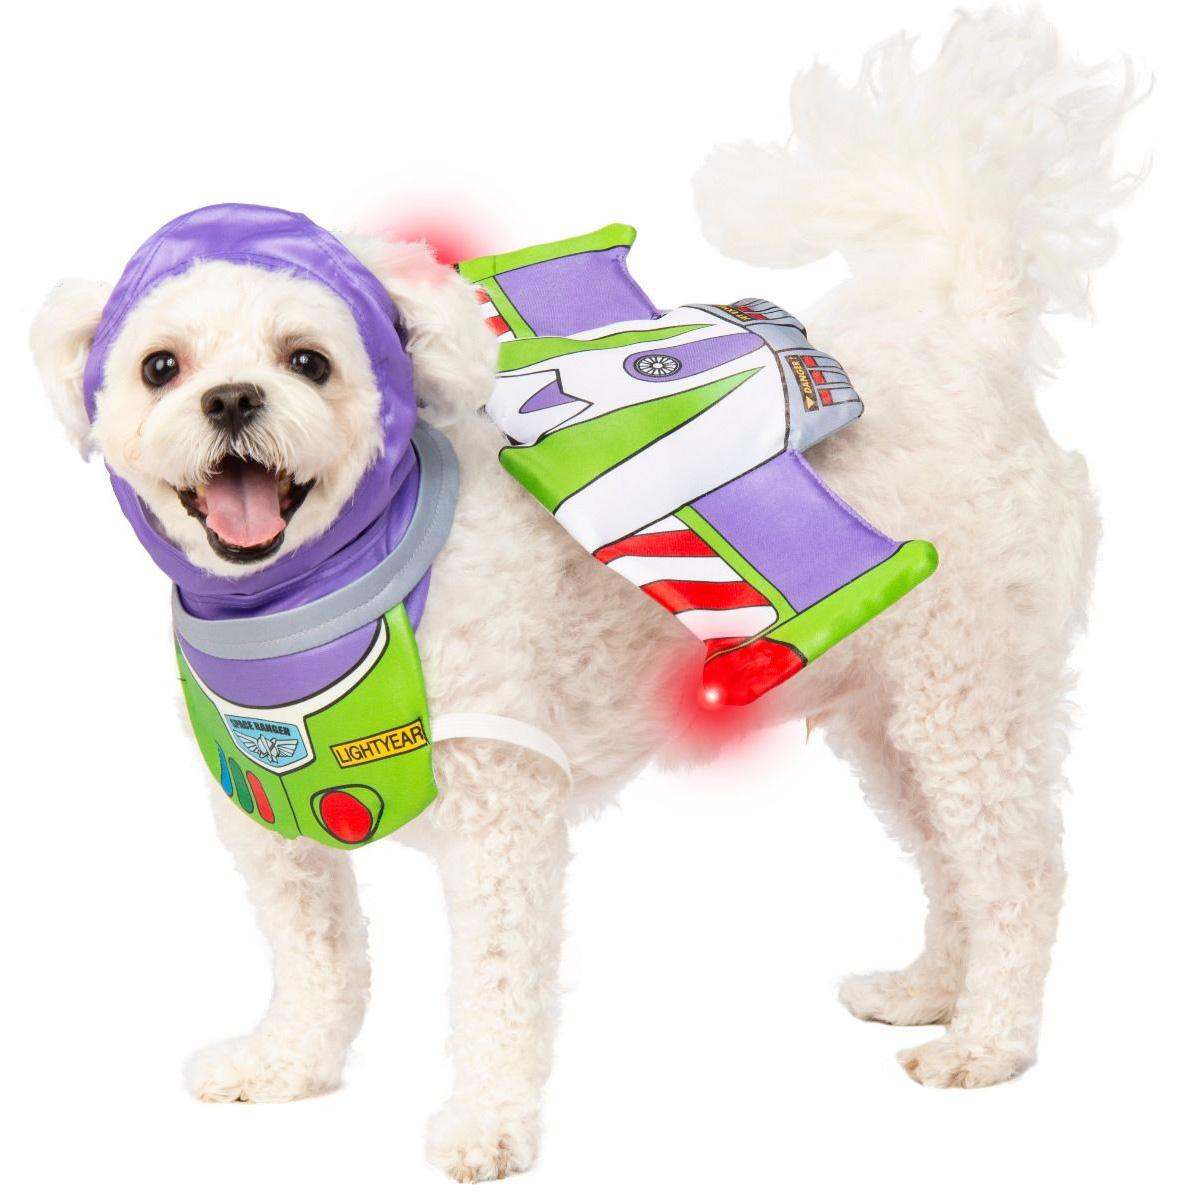 Toy Story Buzz Lightyear Dog Costume Accessories by Rubies